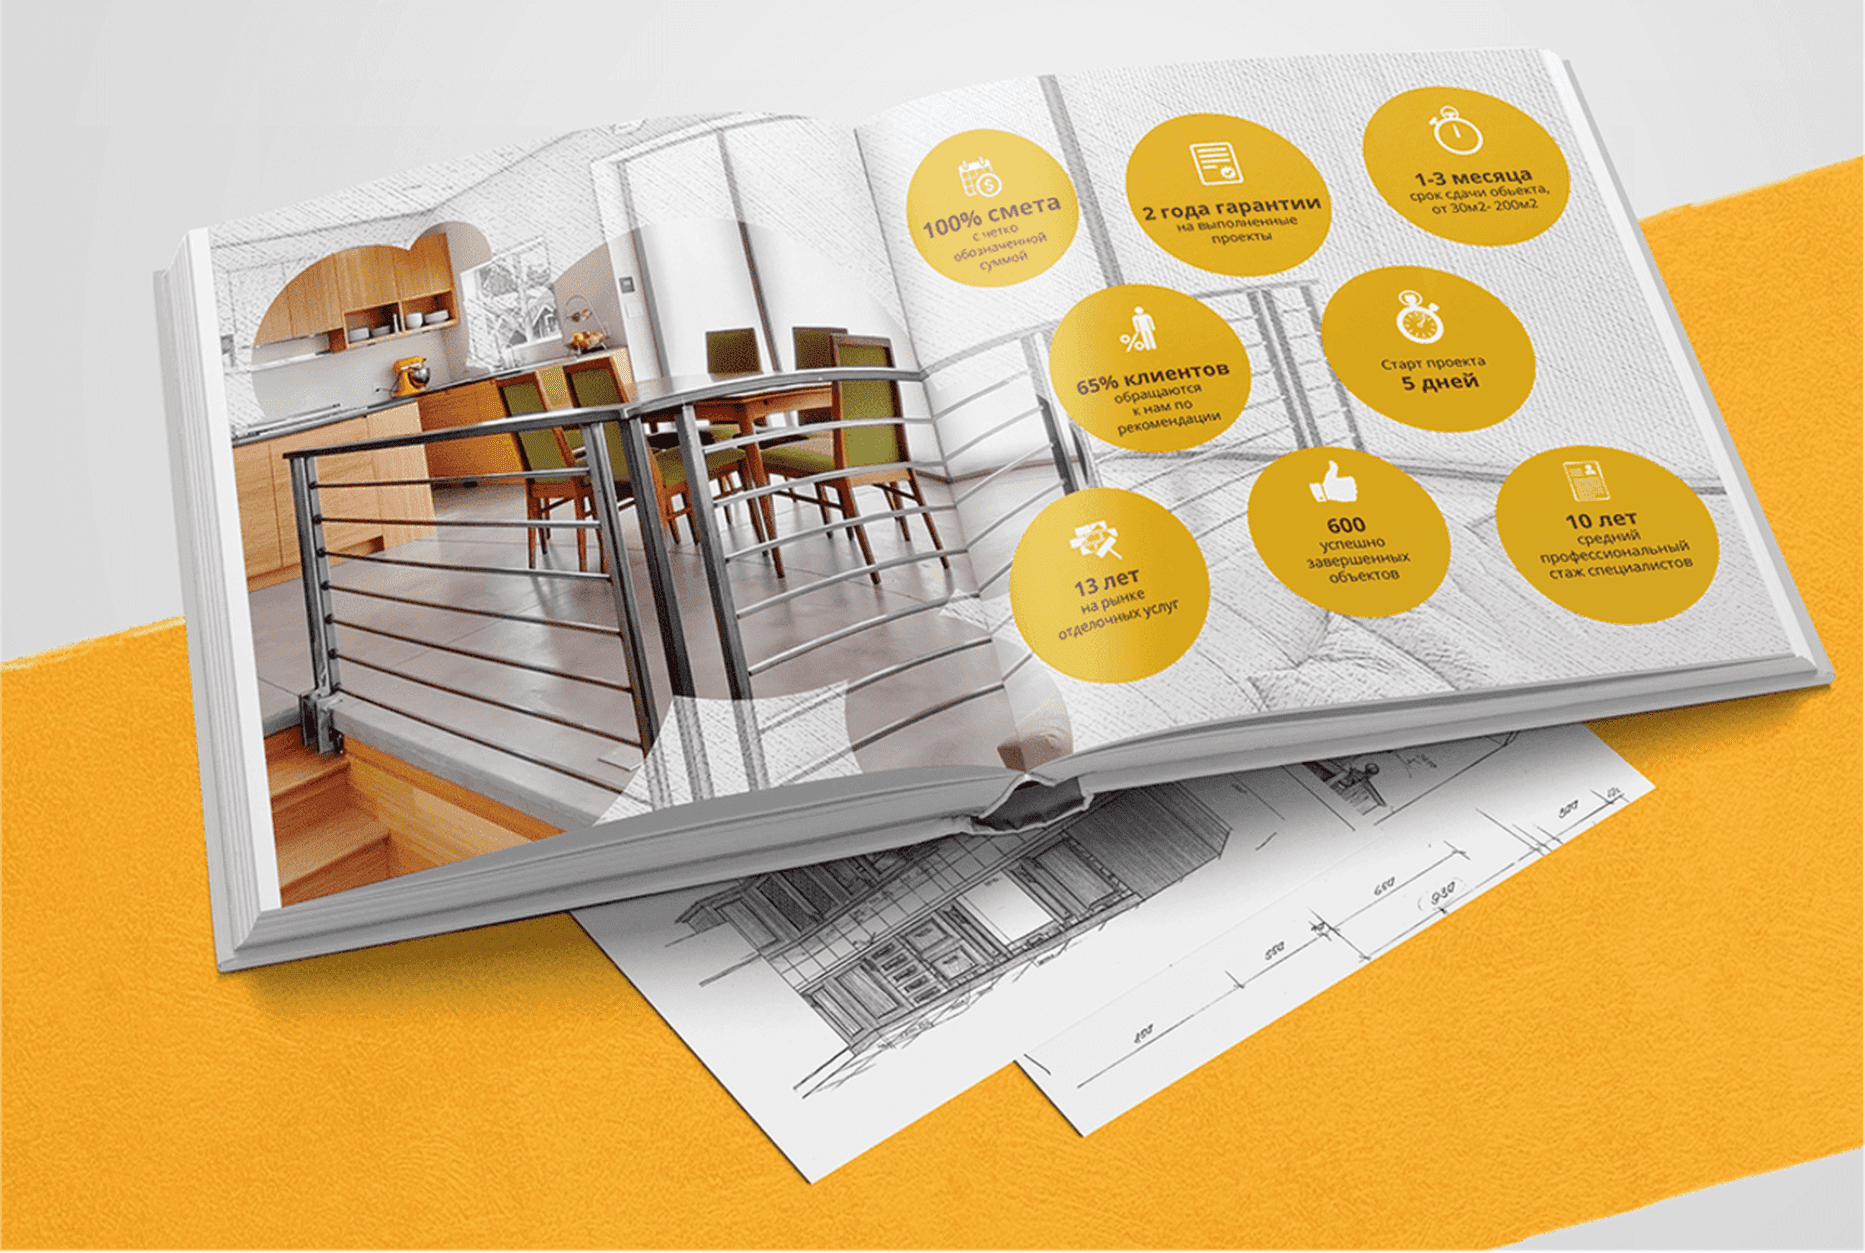 Case Study: Marketing Kit for Apartment Repair — Rubarb - Image - 6